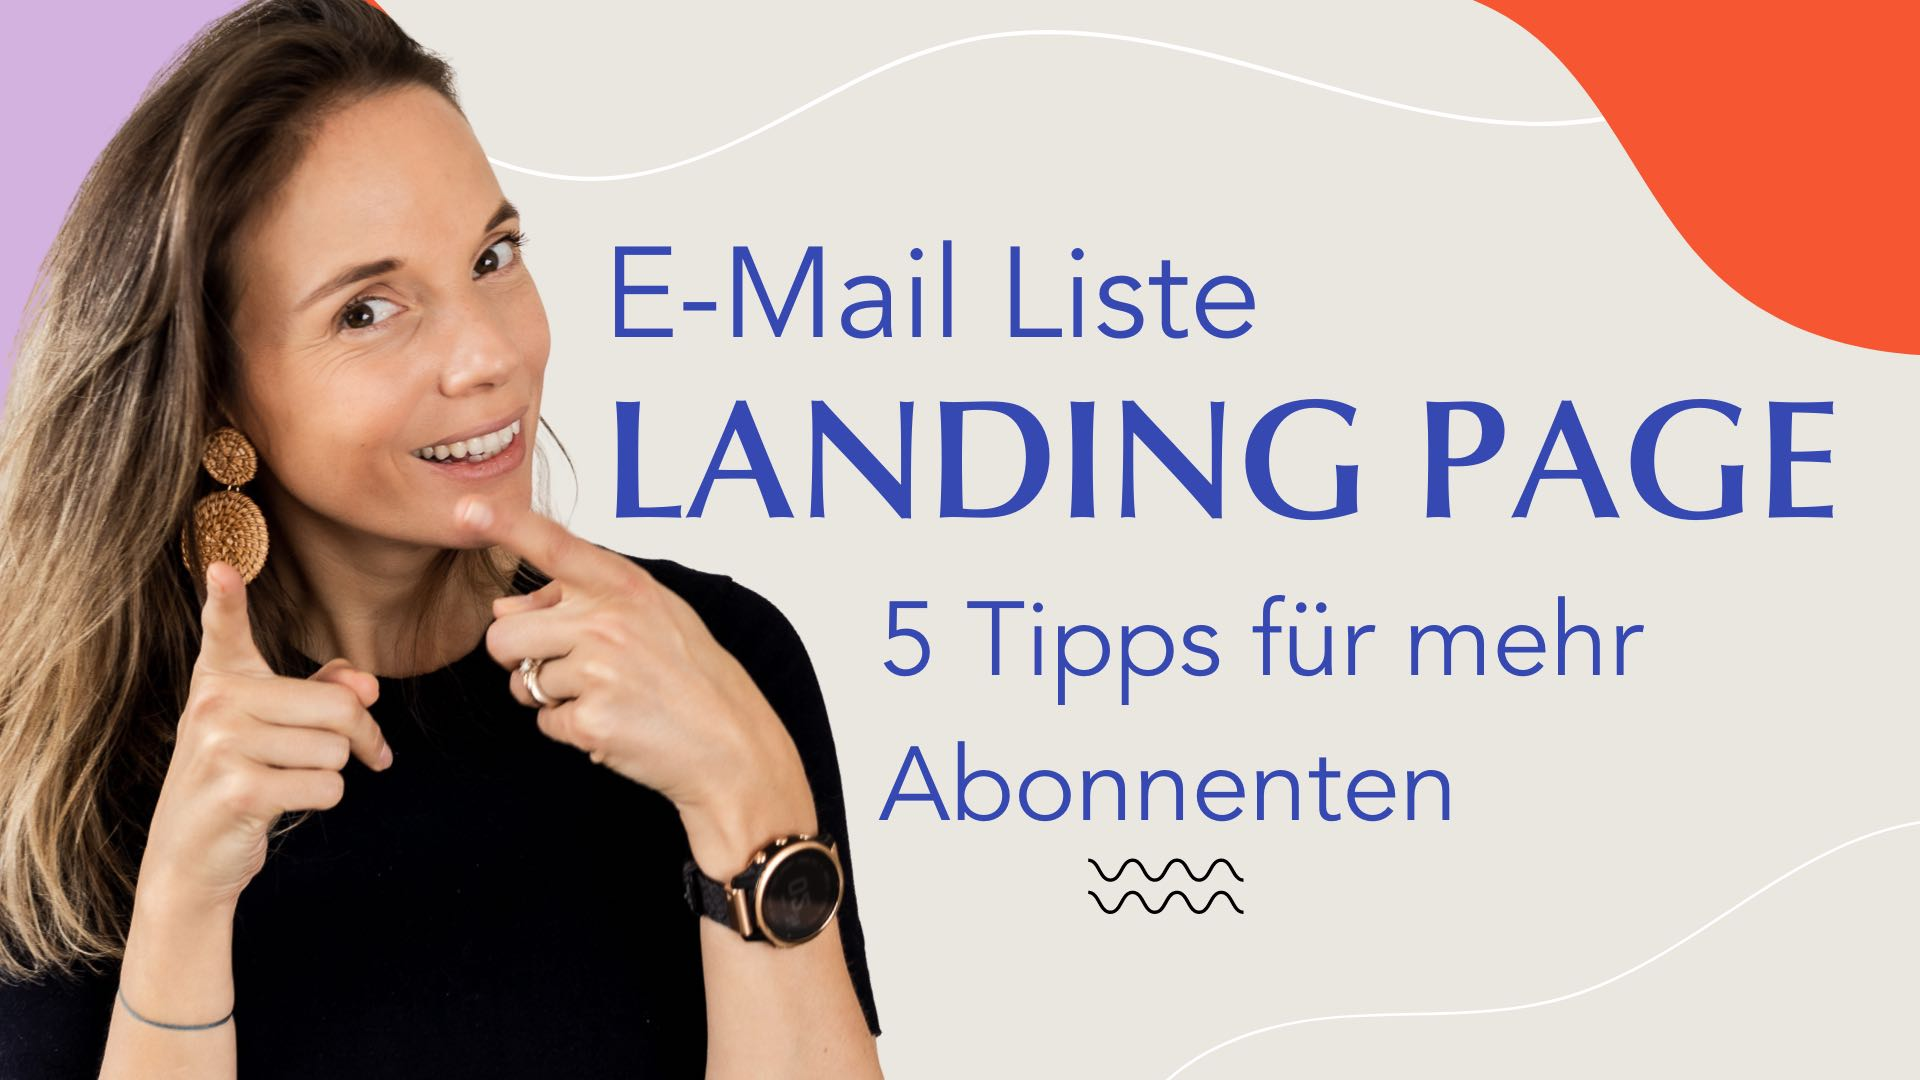 E-Mail Liste Landing Page Tipps